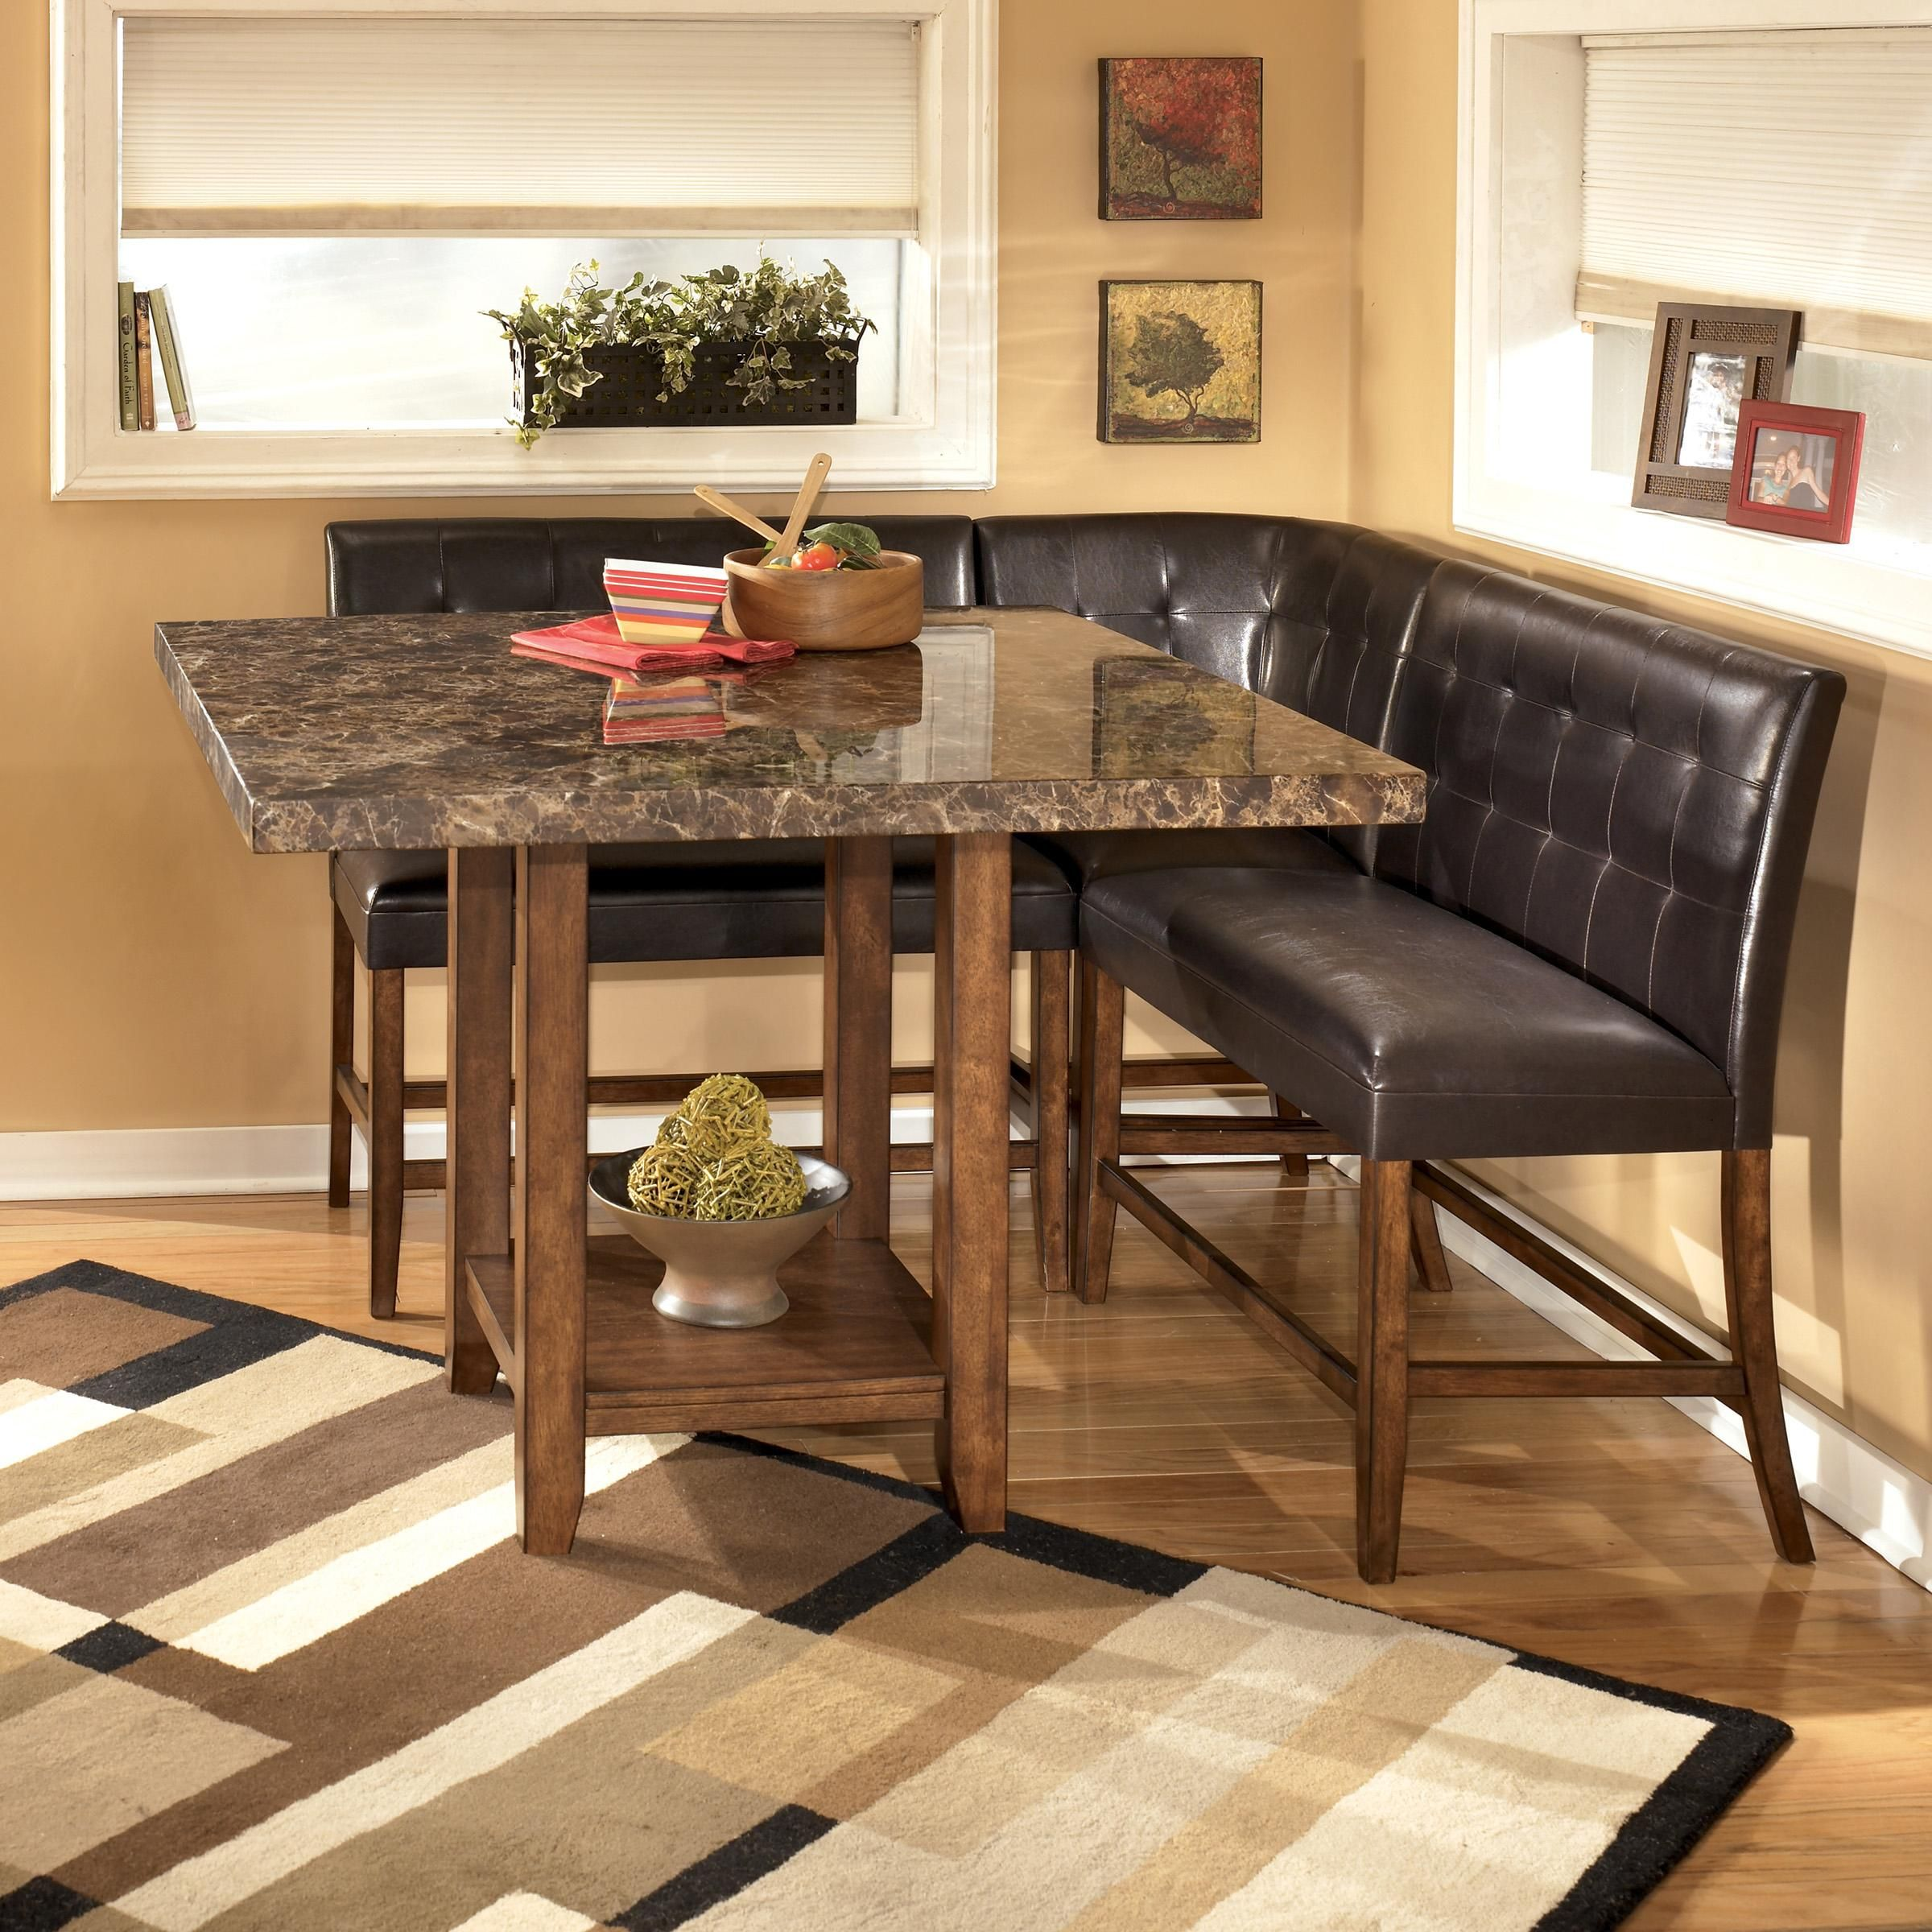 Counter Height Bistro Table Set Pub Table Set Gettysburg Pub Table Set The Most Bar Table Sets